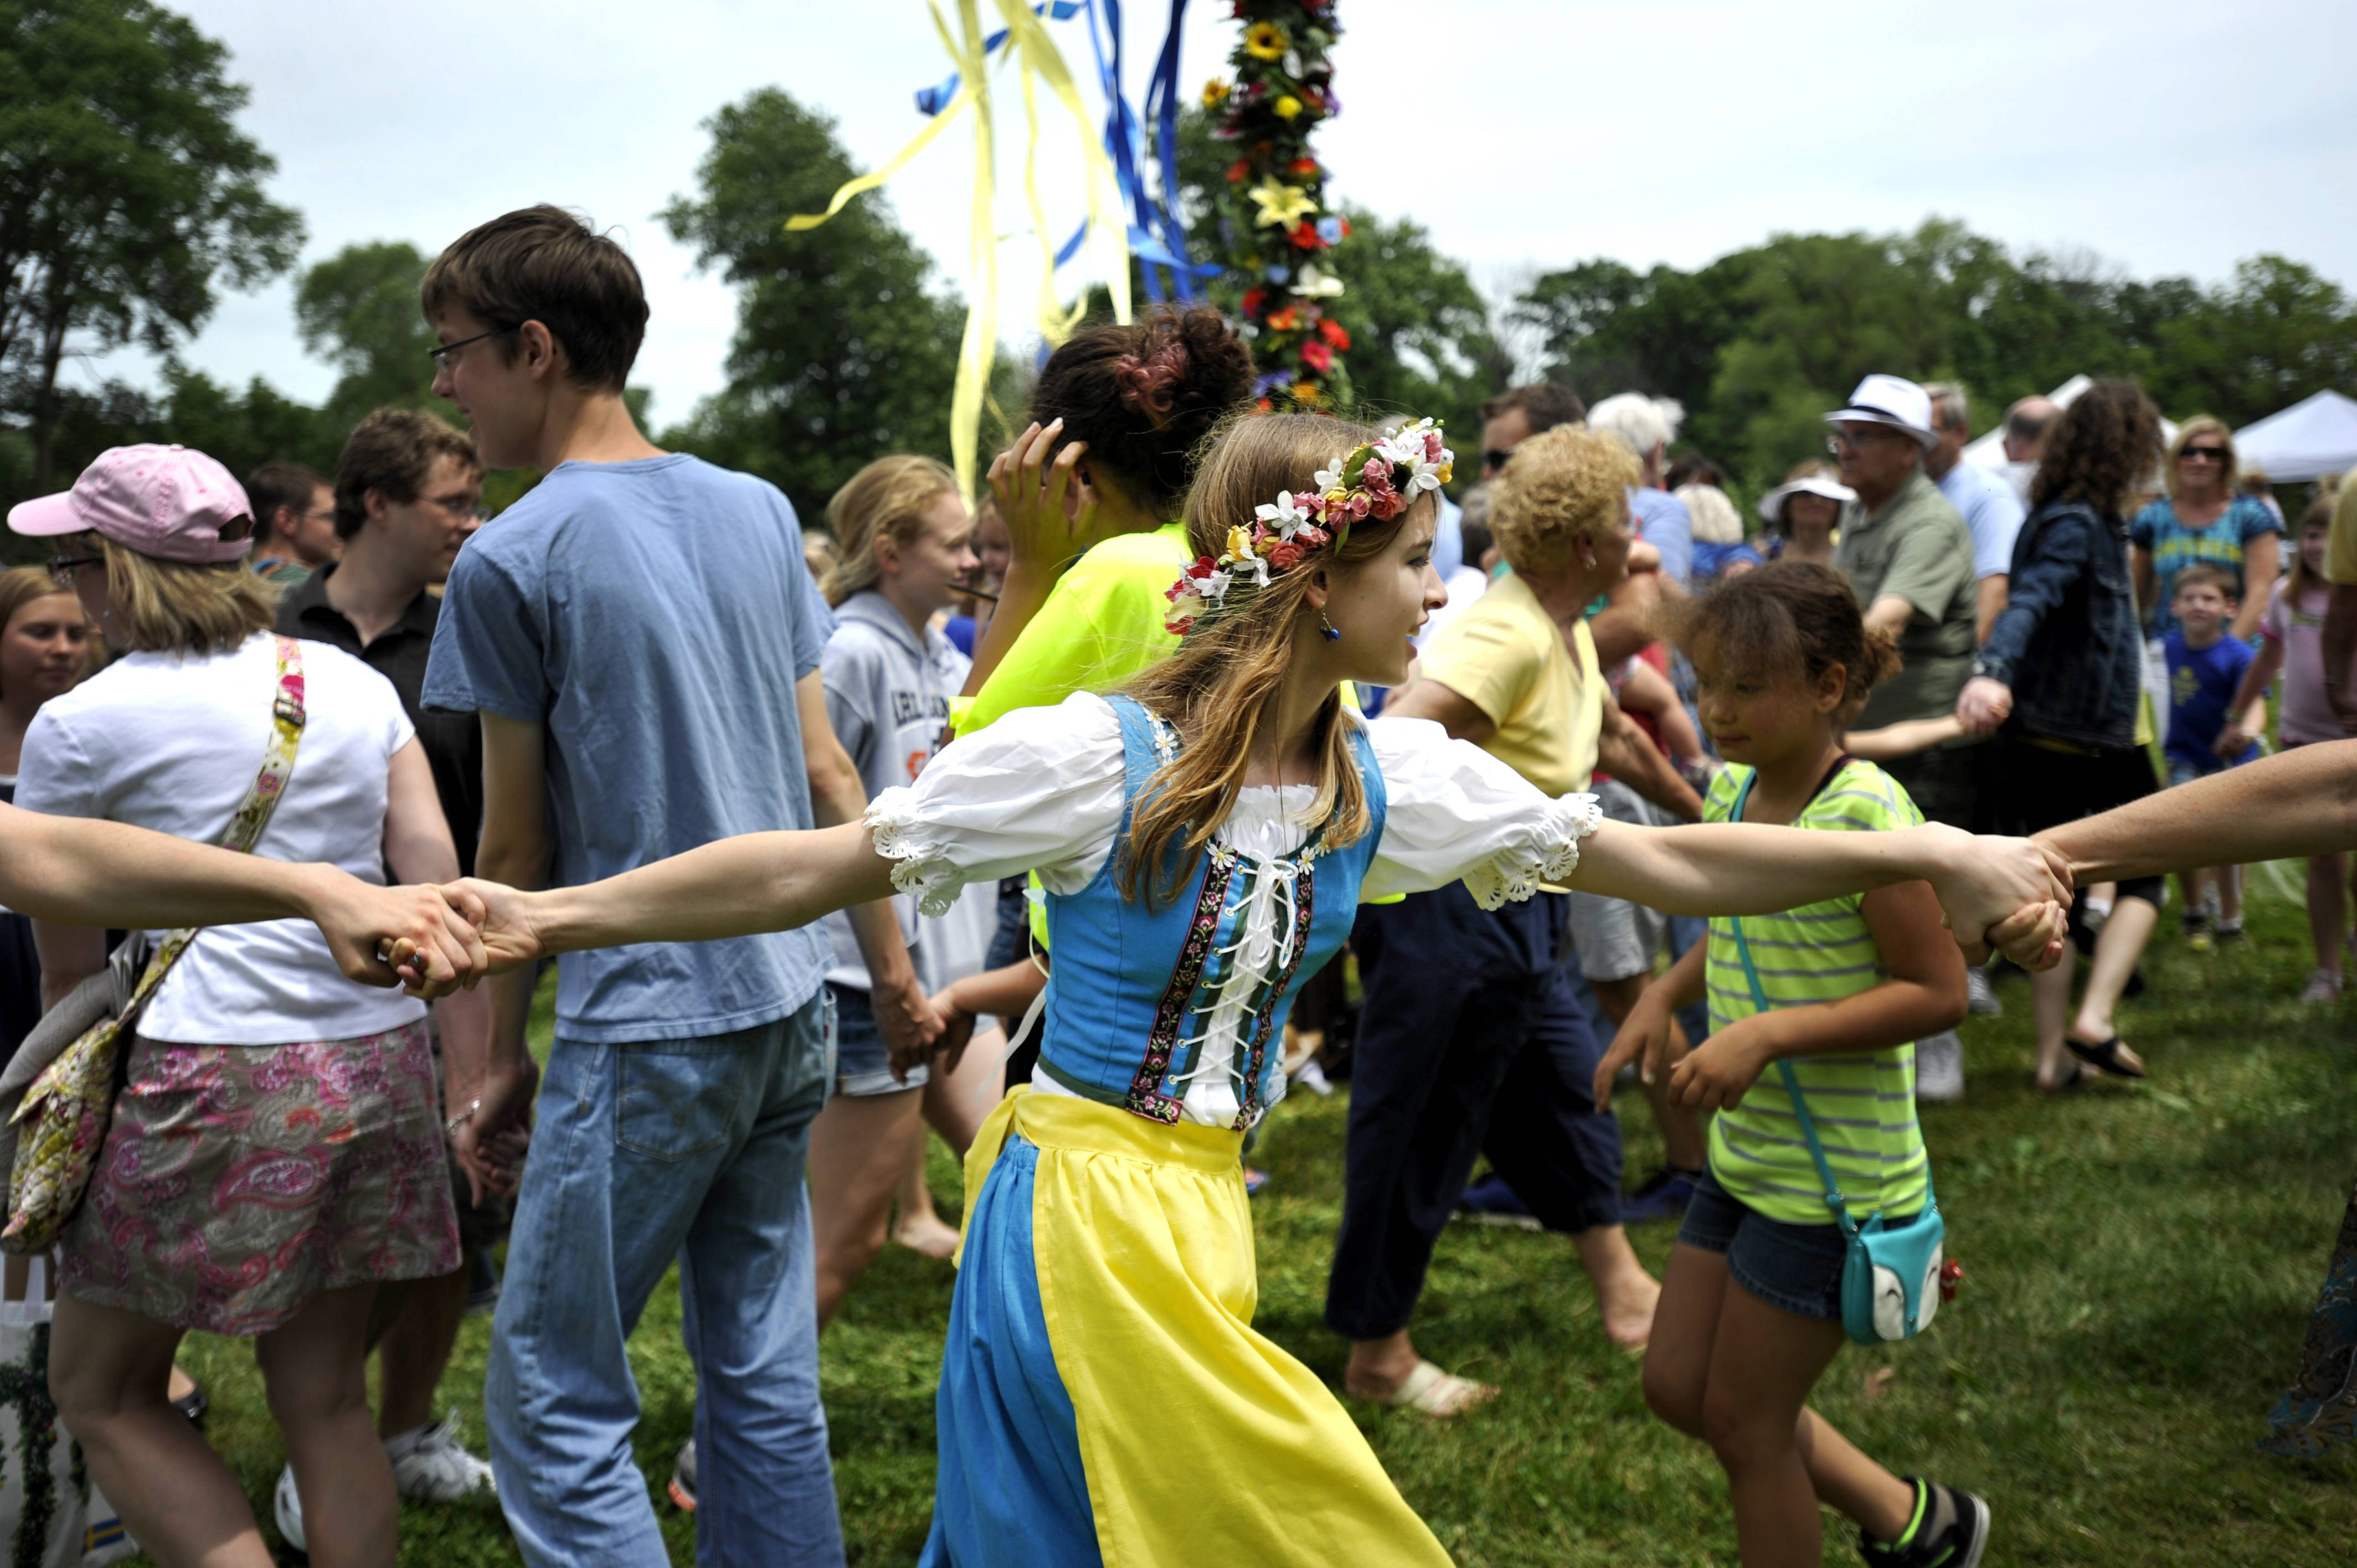 Alex Lewis, 13, of Naperville, participates in the Maypole dances Sunday at the 104th annual Swedish Day Midsommar Festival in Geneva. The Maypole dances are one of the highlights of the annual Swedish festival, and some participants wear authentic traditional Swedish clothing.